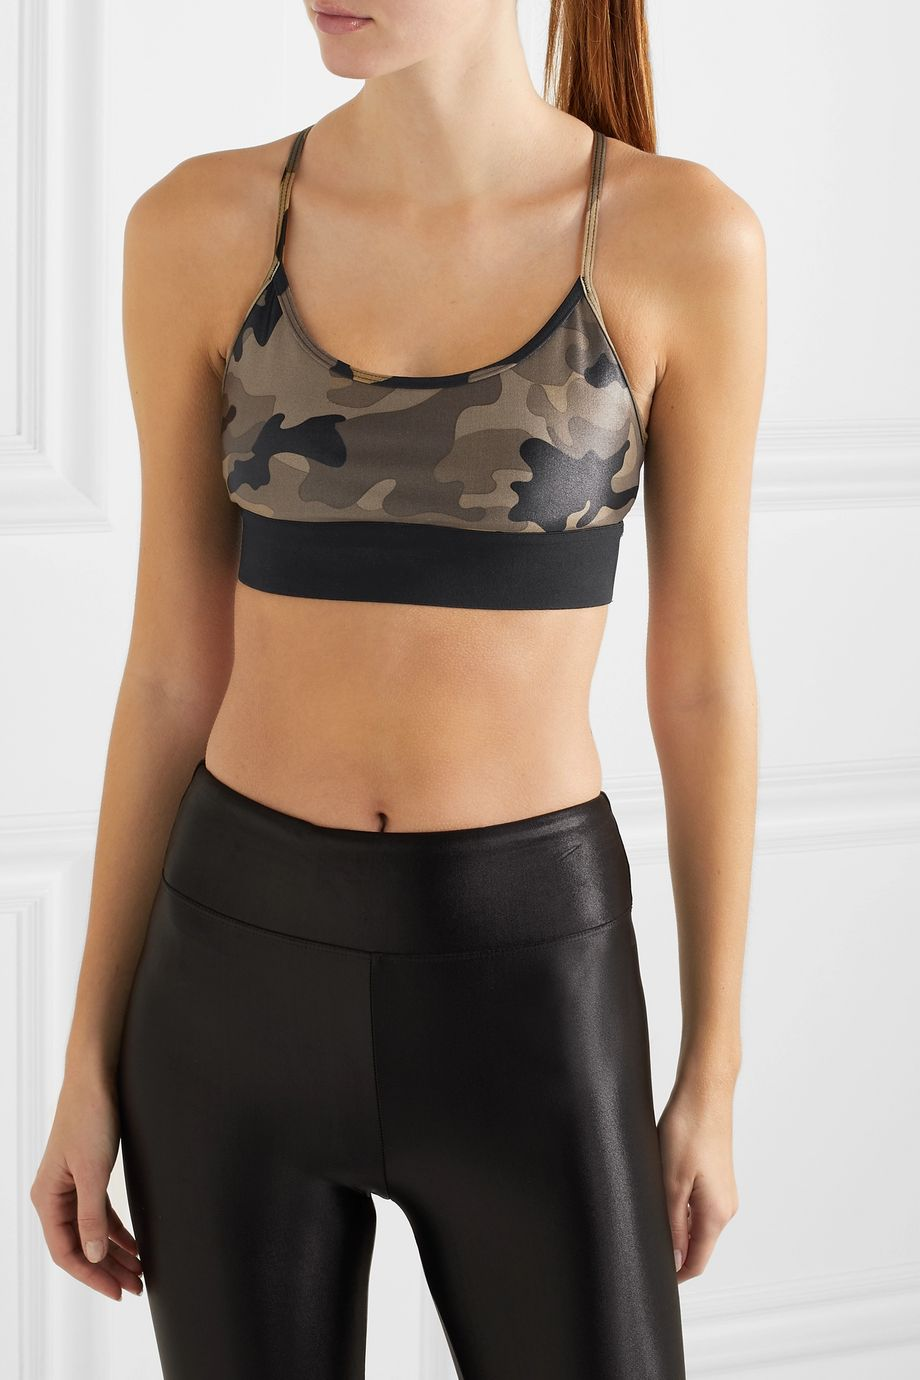 Koral Sweeper printed stretch sports bra